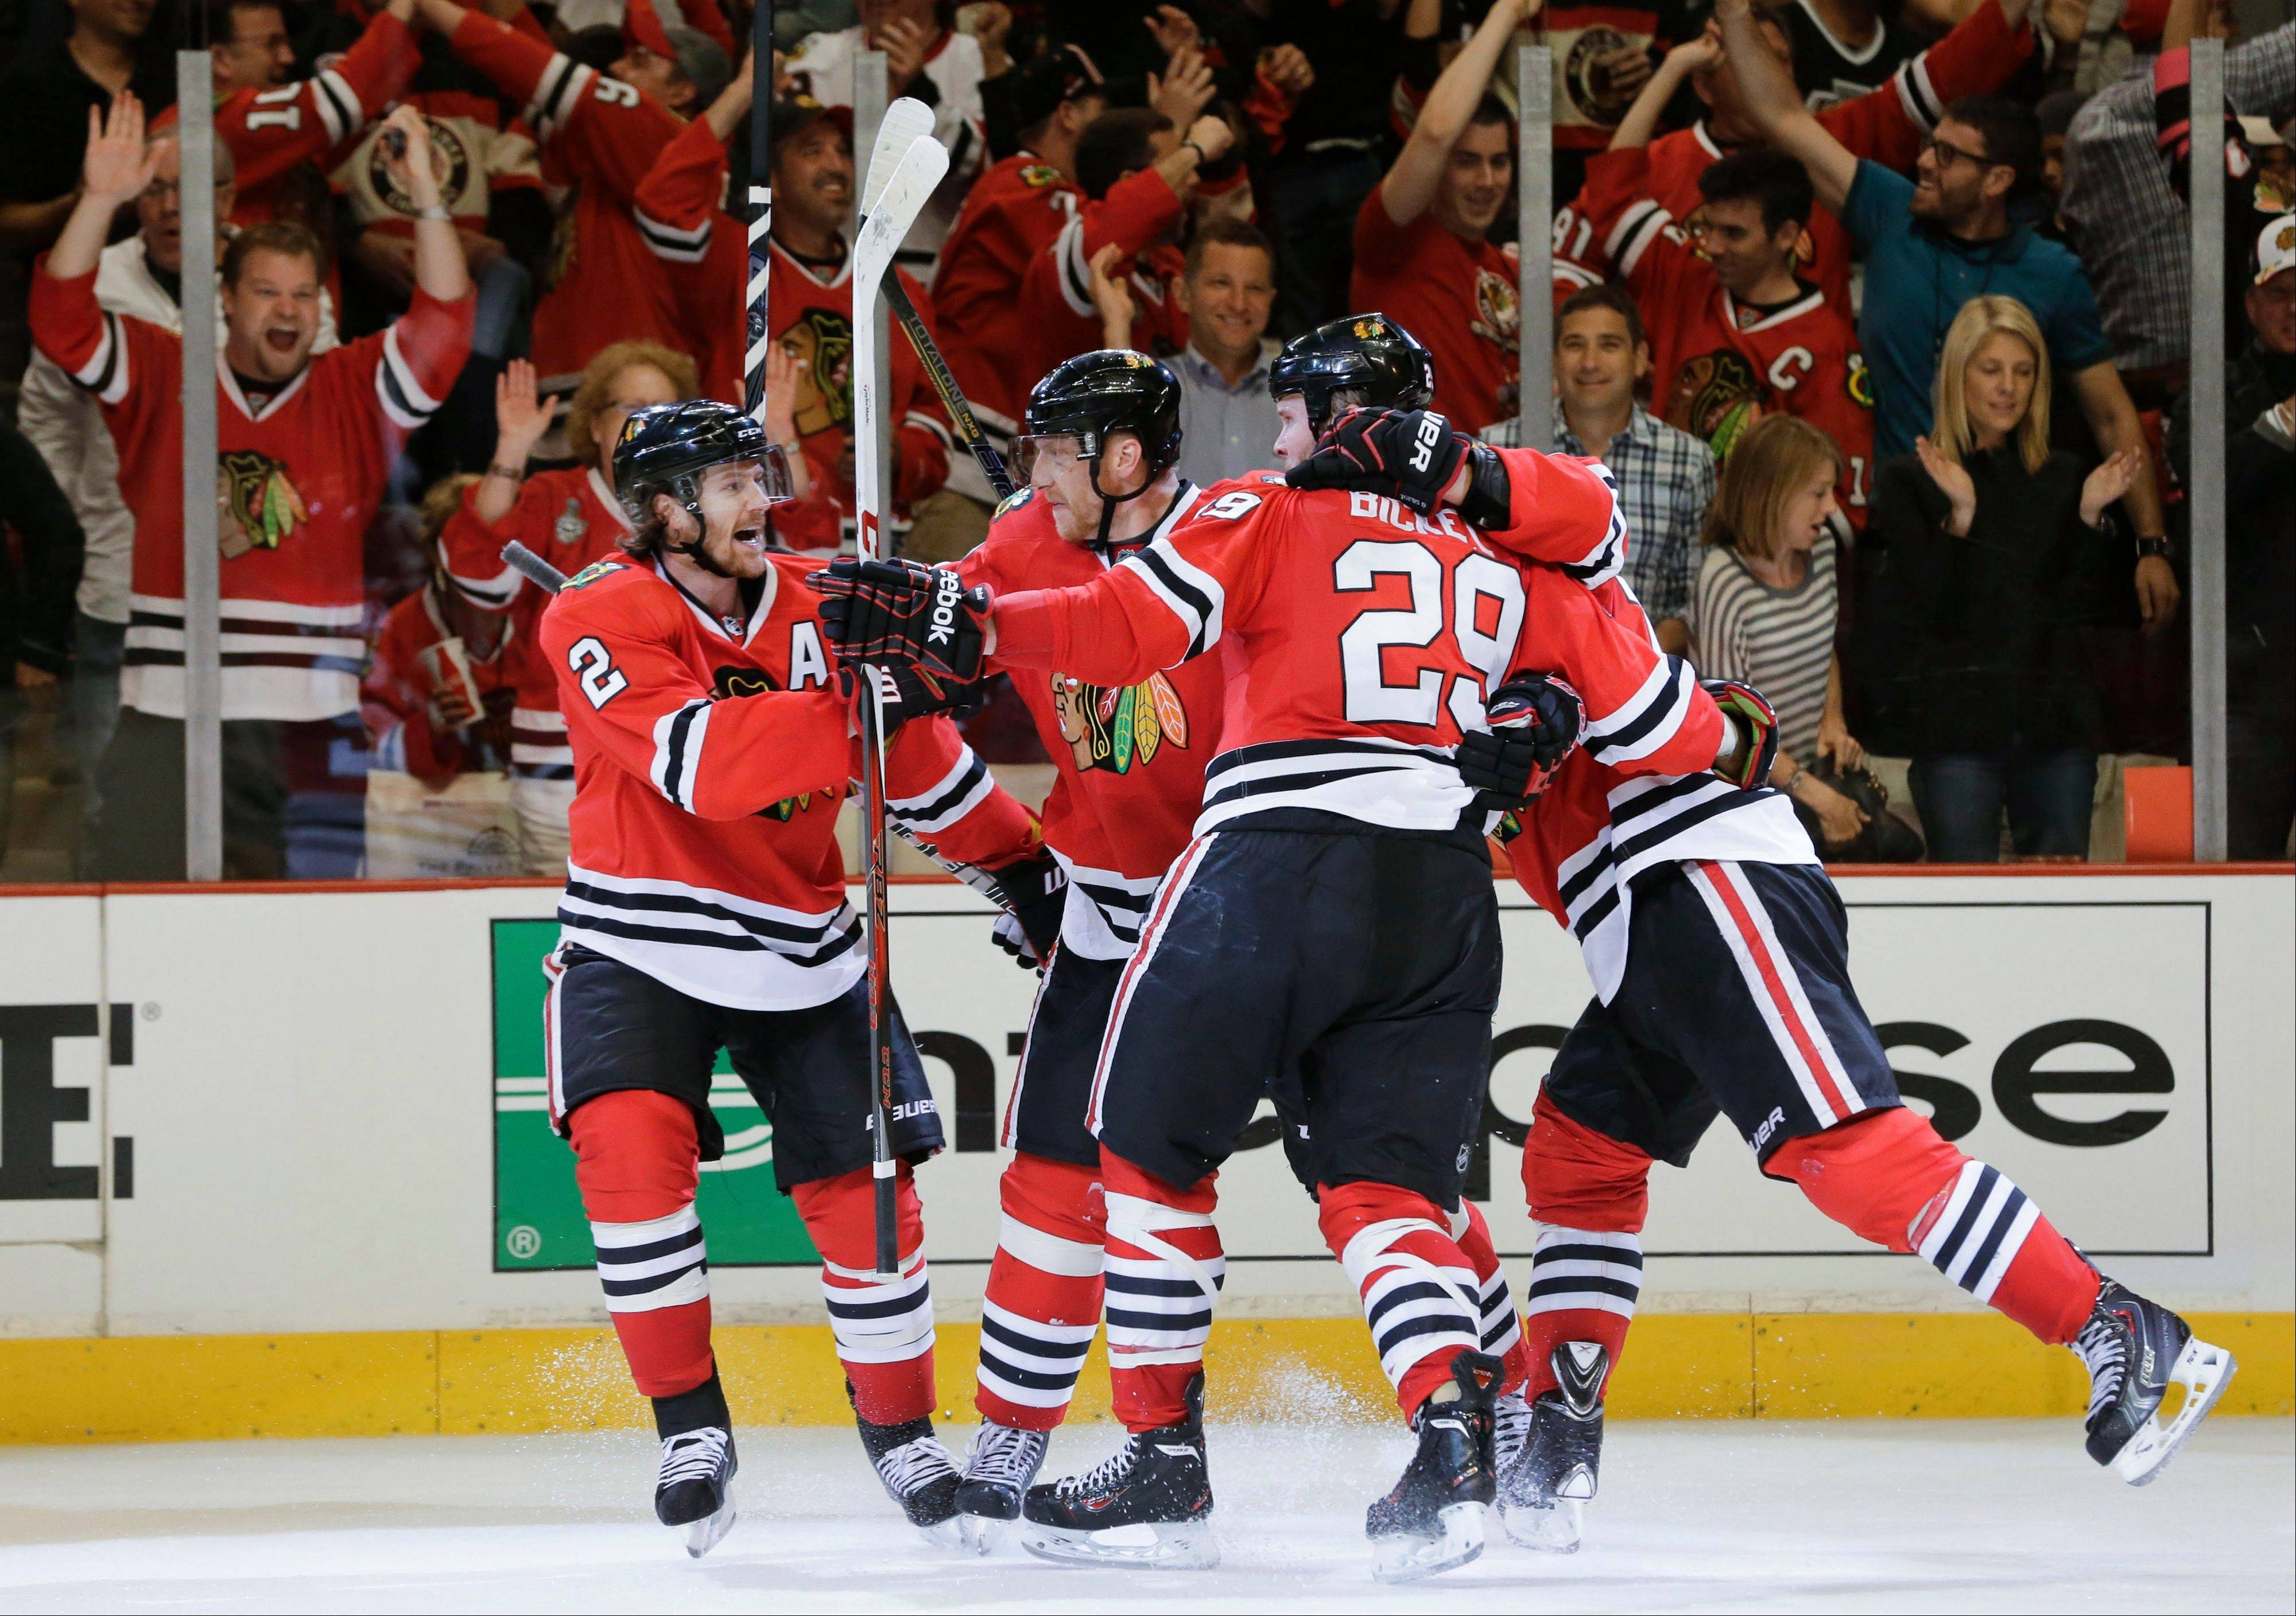 The Chicago Blackhawks celebrate after a goal against the Los Angeles Kings during the second period of Game 1 of the NHL hockey Stanley Cup Western Conference finals, Saturday, June 1, 2013, in Chicago.